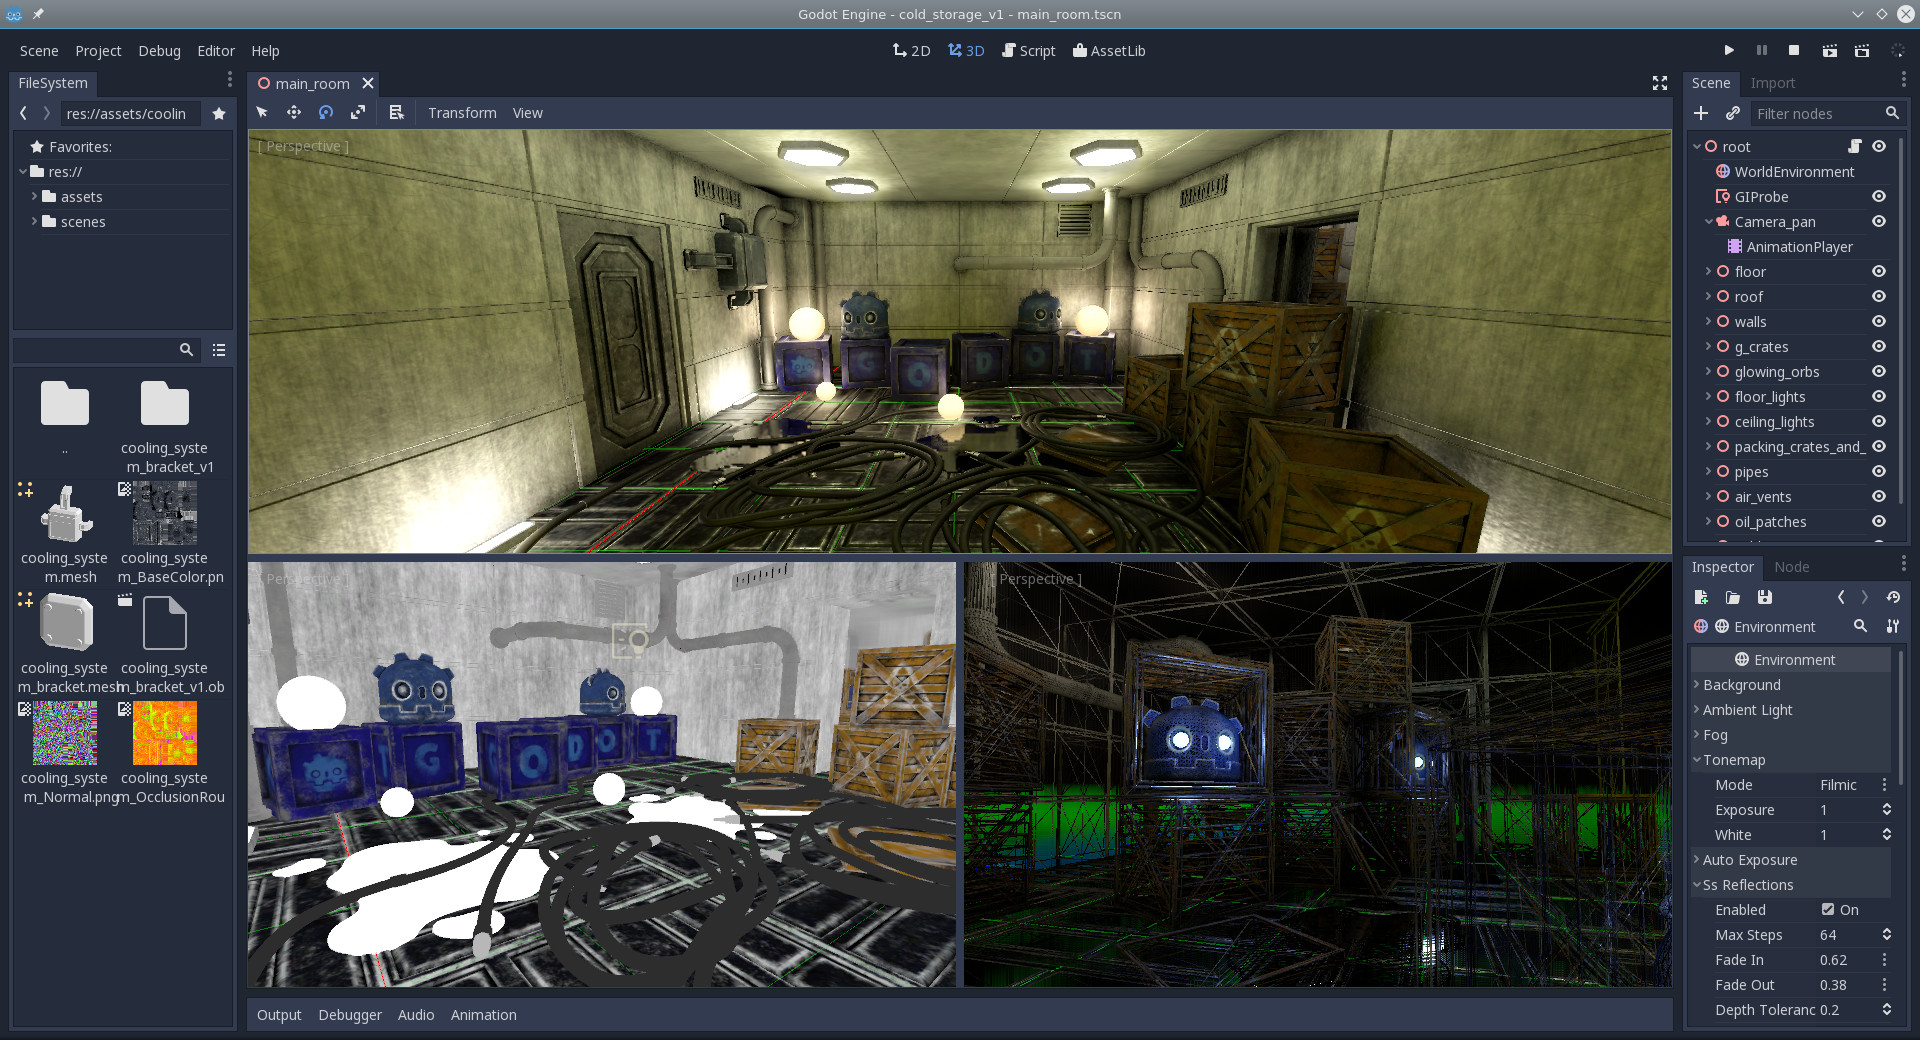 Screenshot of a 3D scene in Godot Engine